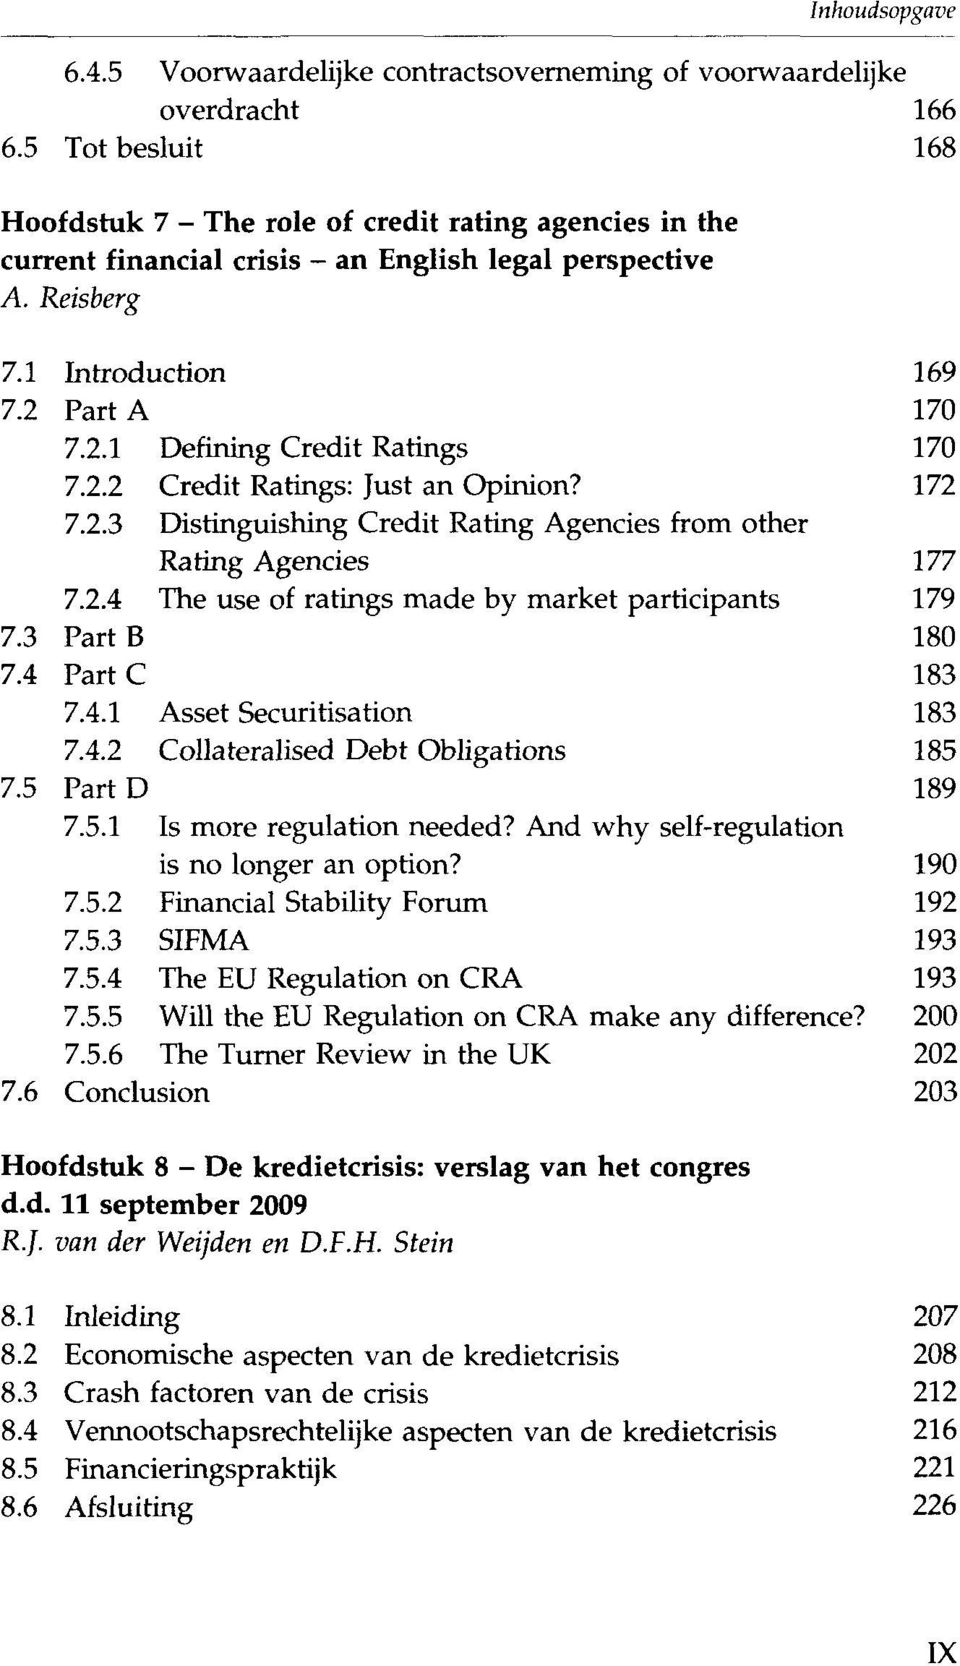 2.2 Credit Ratings: Just an Opinion? 172 7.2.3 Distinguishing Credit Rating Agencies from other Raring Agencies 177 7.2.4 The use of ratings made by market participants 179 7.3 PartB 180 7.